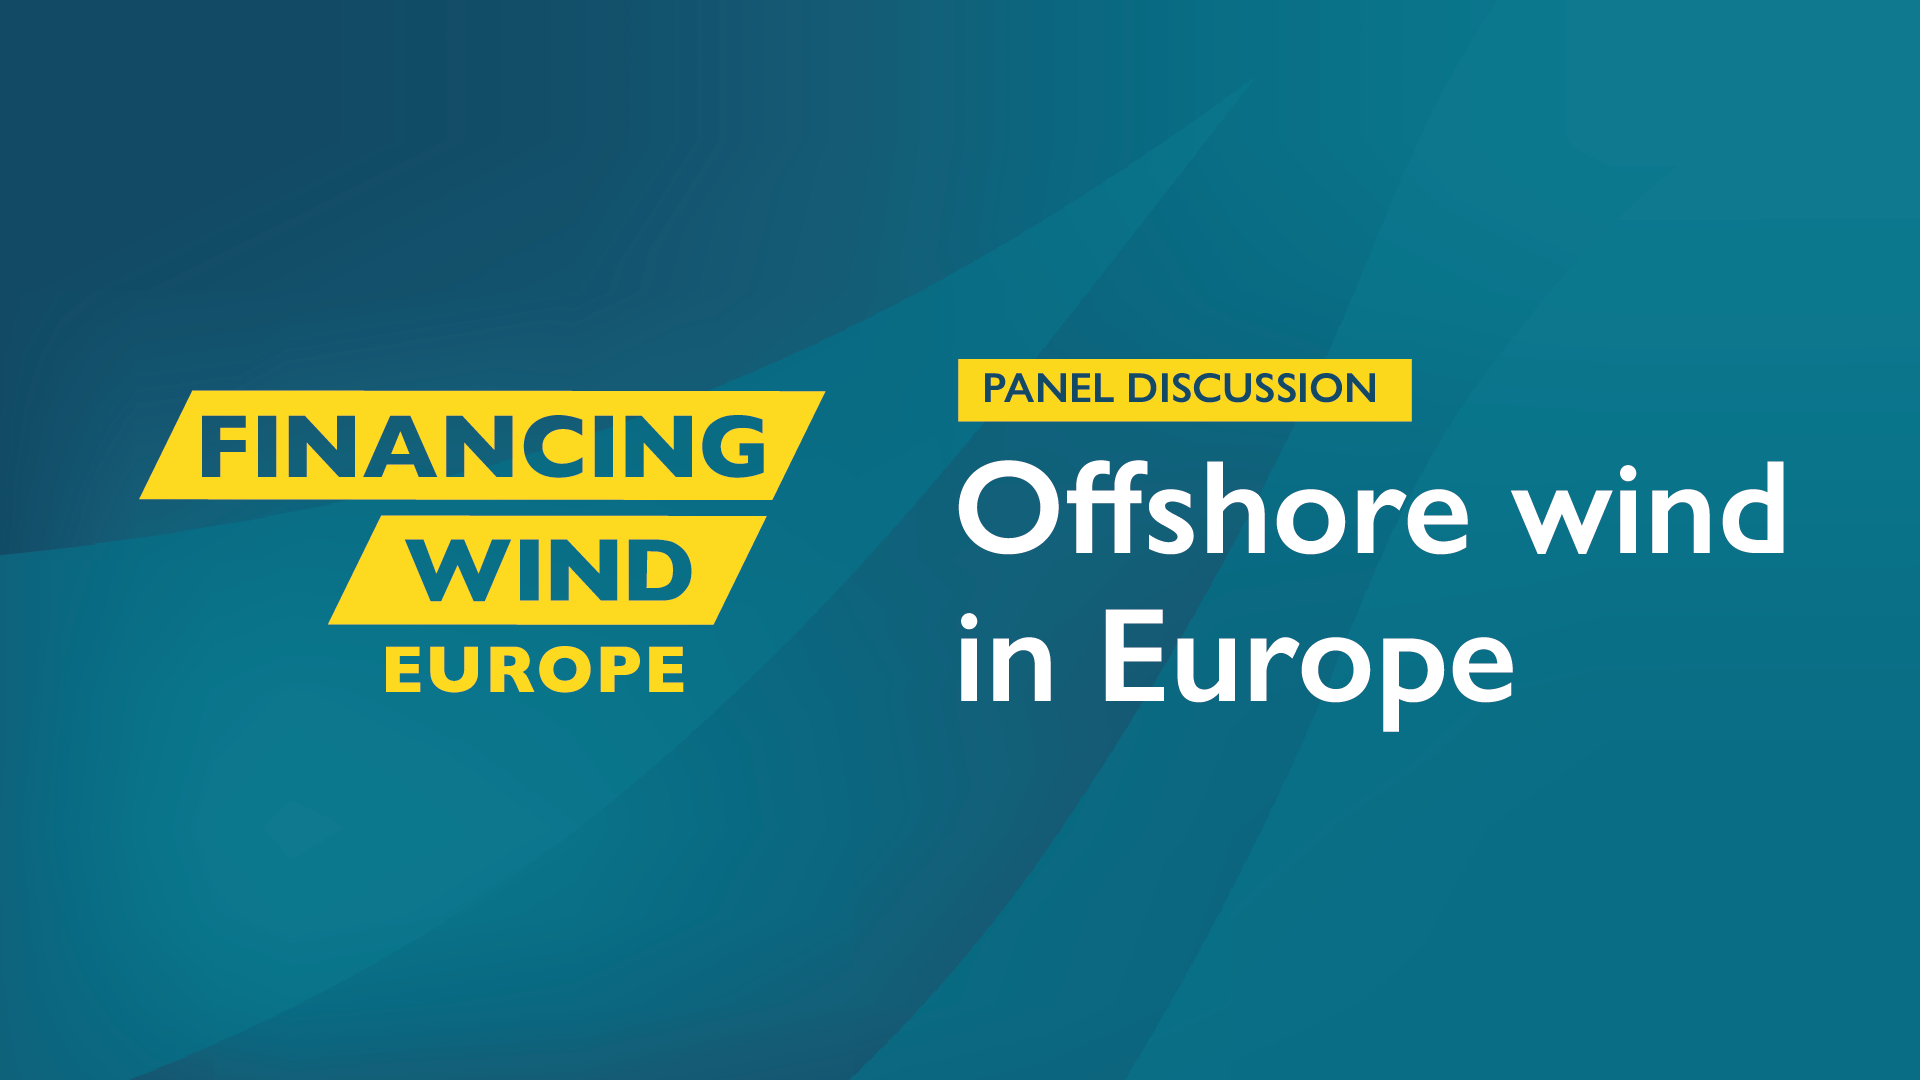 Panel Discussion: Offshore wind in Europe